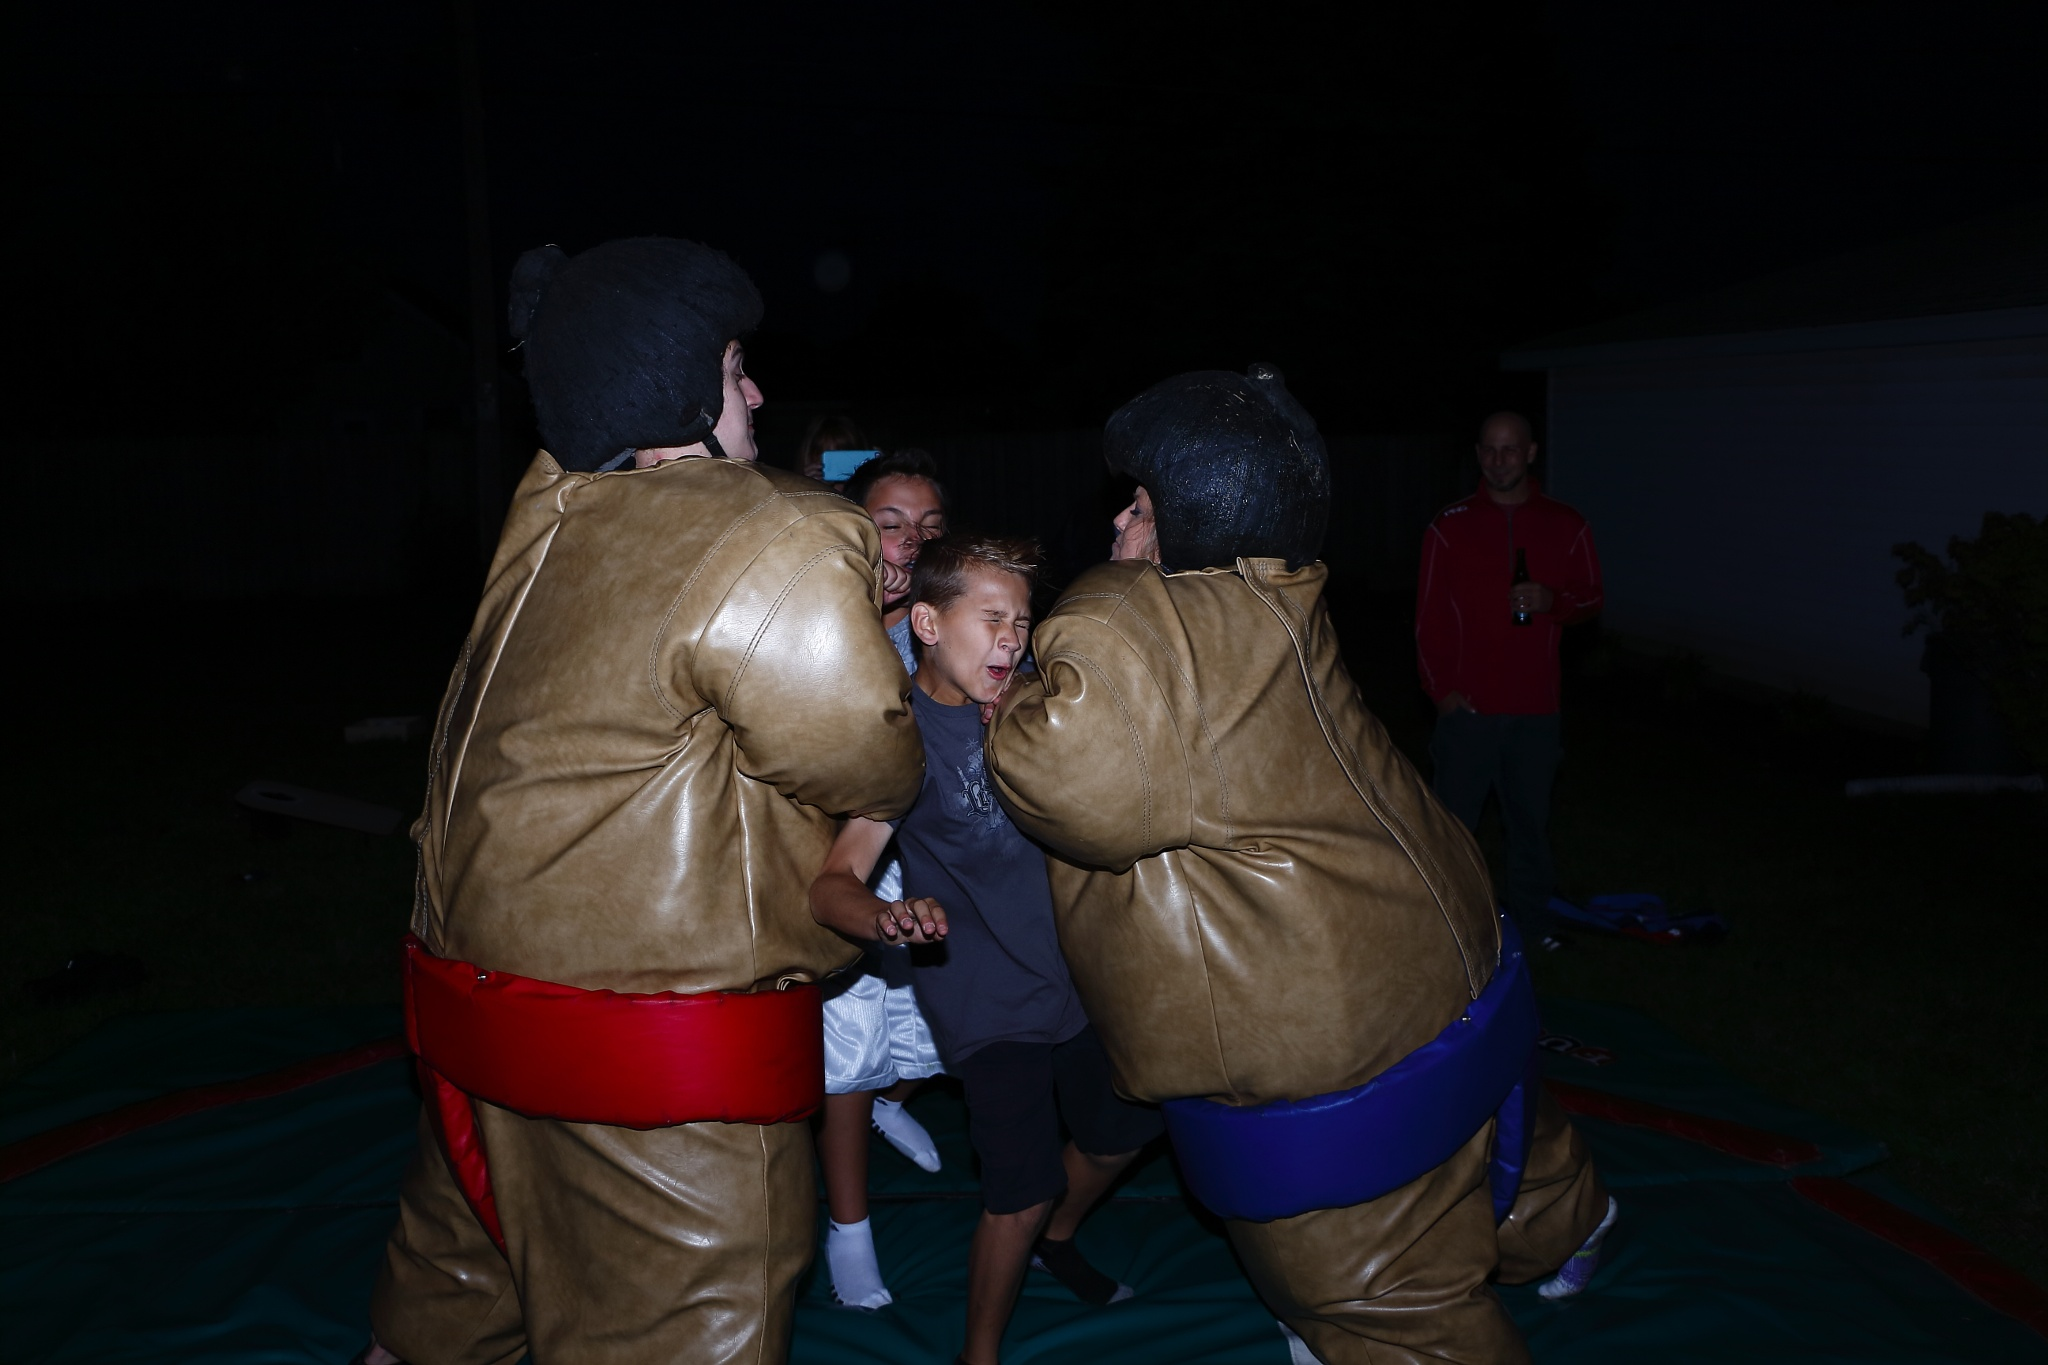 Sumo suit smash! by Danny V Photography